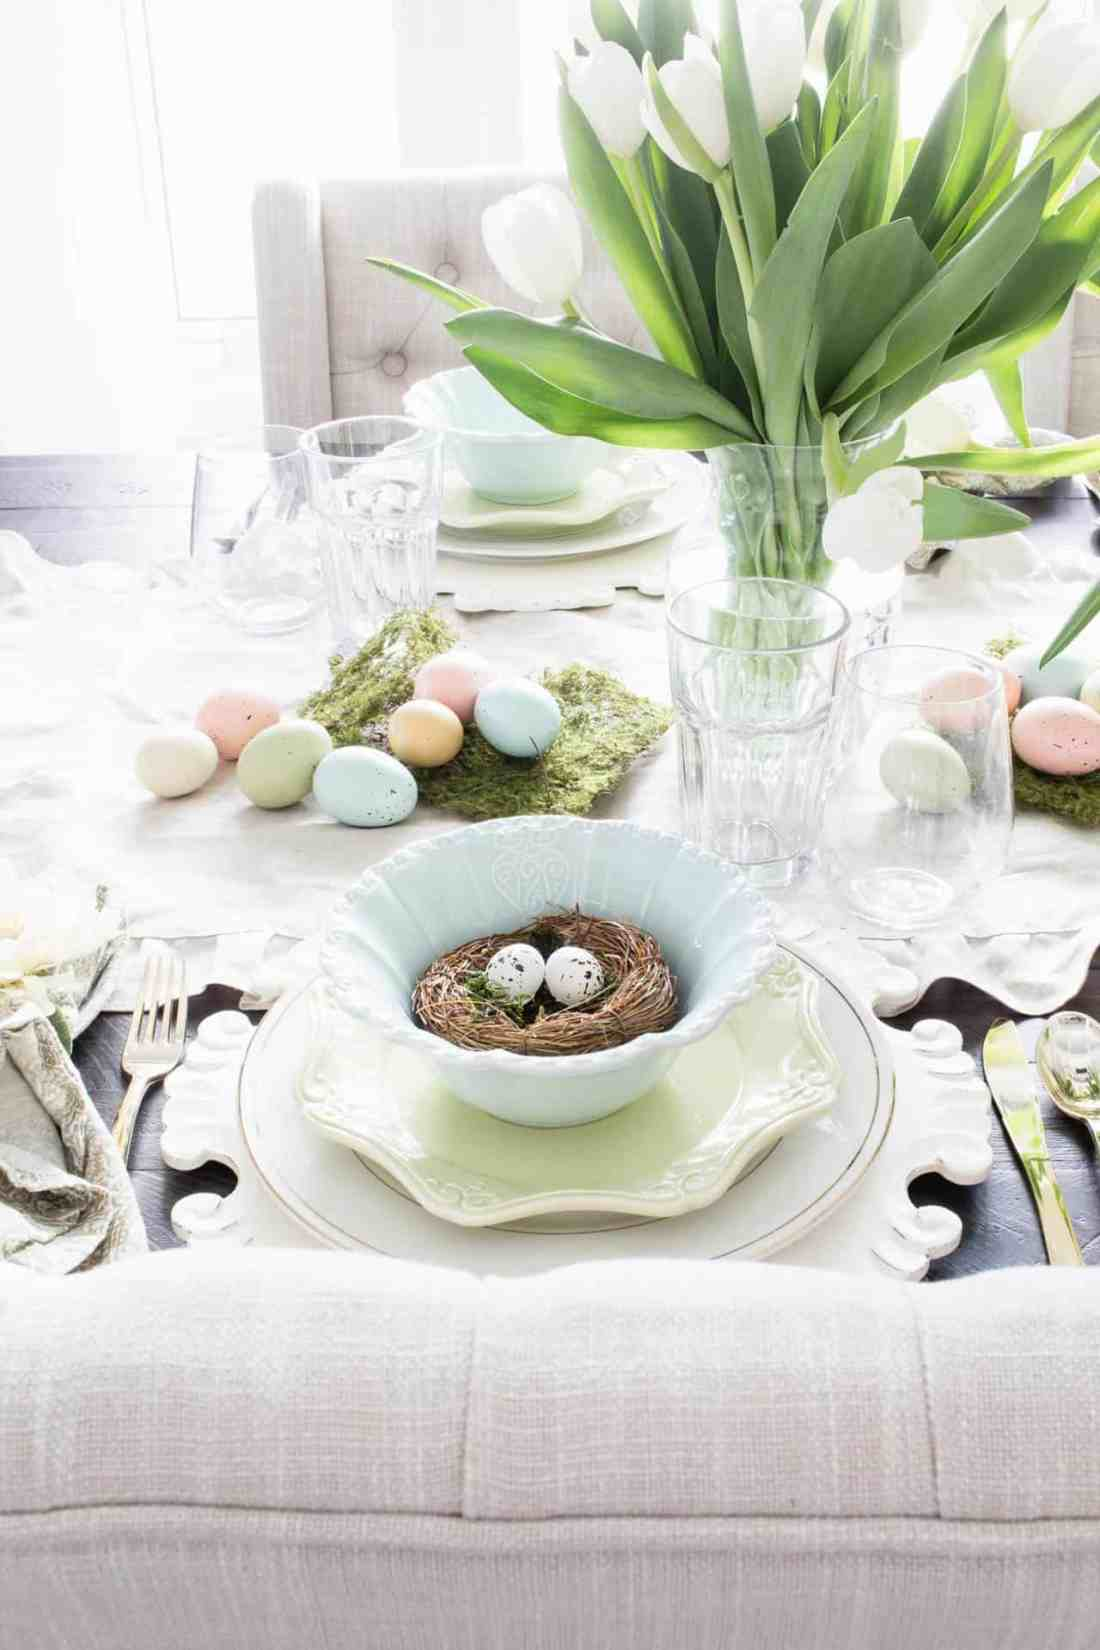 spring table setting with ruffled linen runner, faux moss and pastel easter egg decor